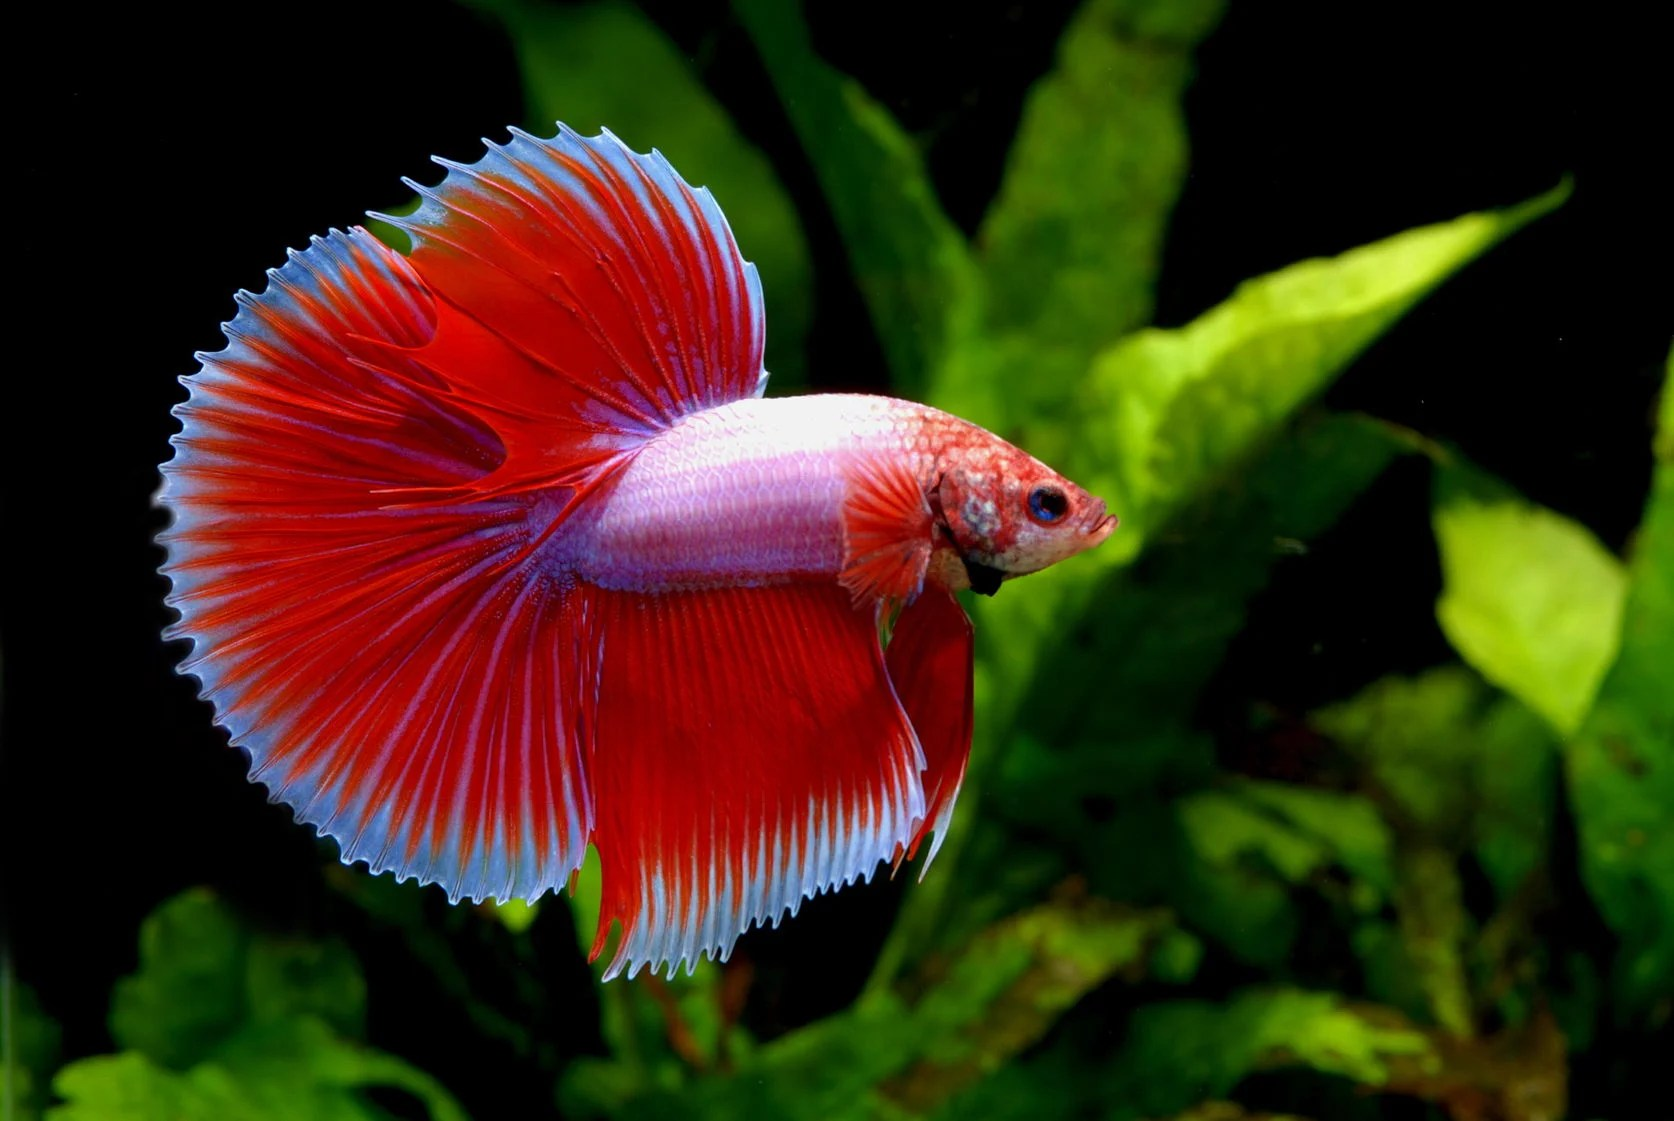 Special Betta Everything You Need To Know About Species Betta Fish Average Lifespan Betta Fish Life Span Male houzz 01 Betta Fish Lifespan